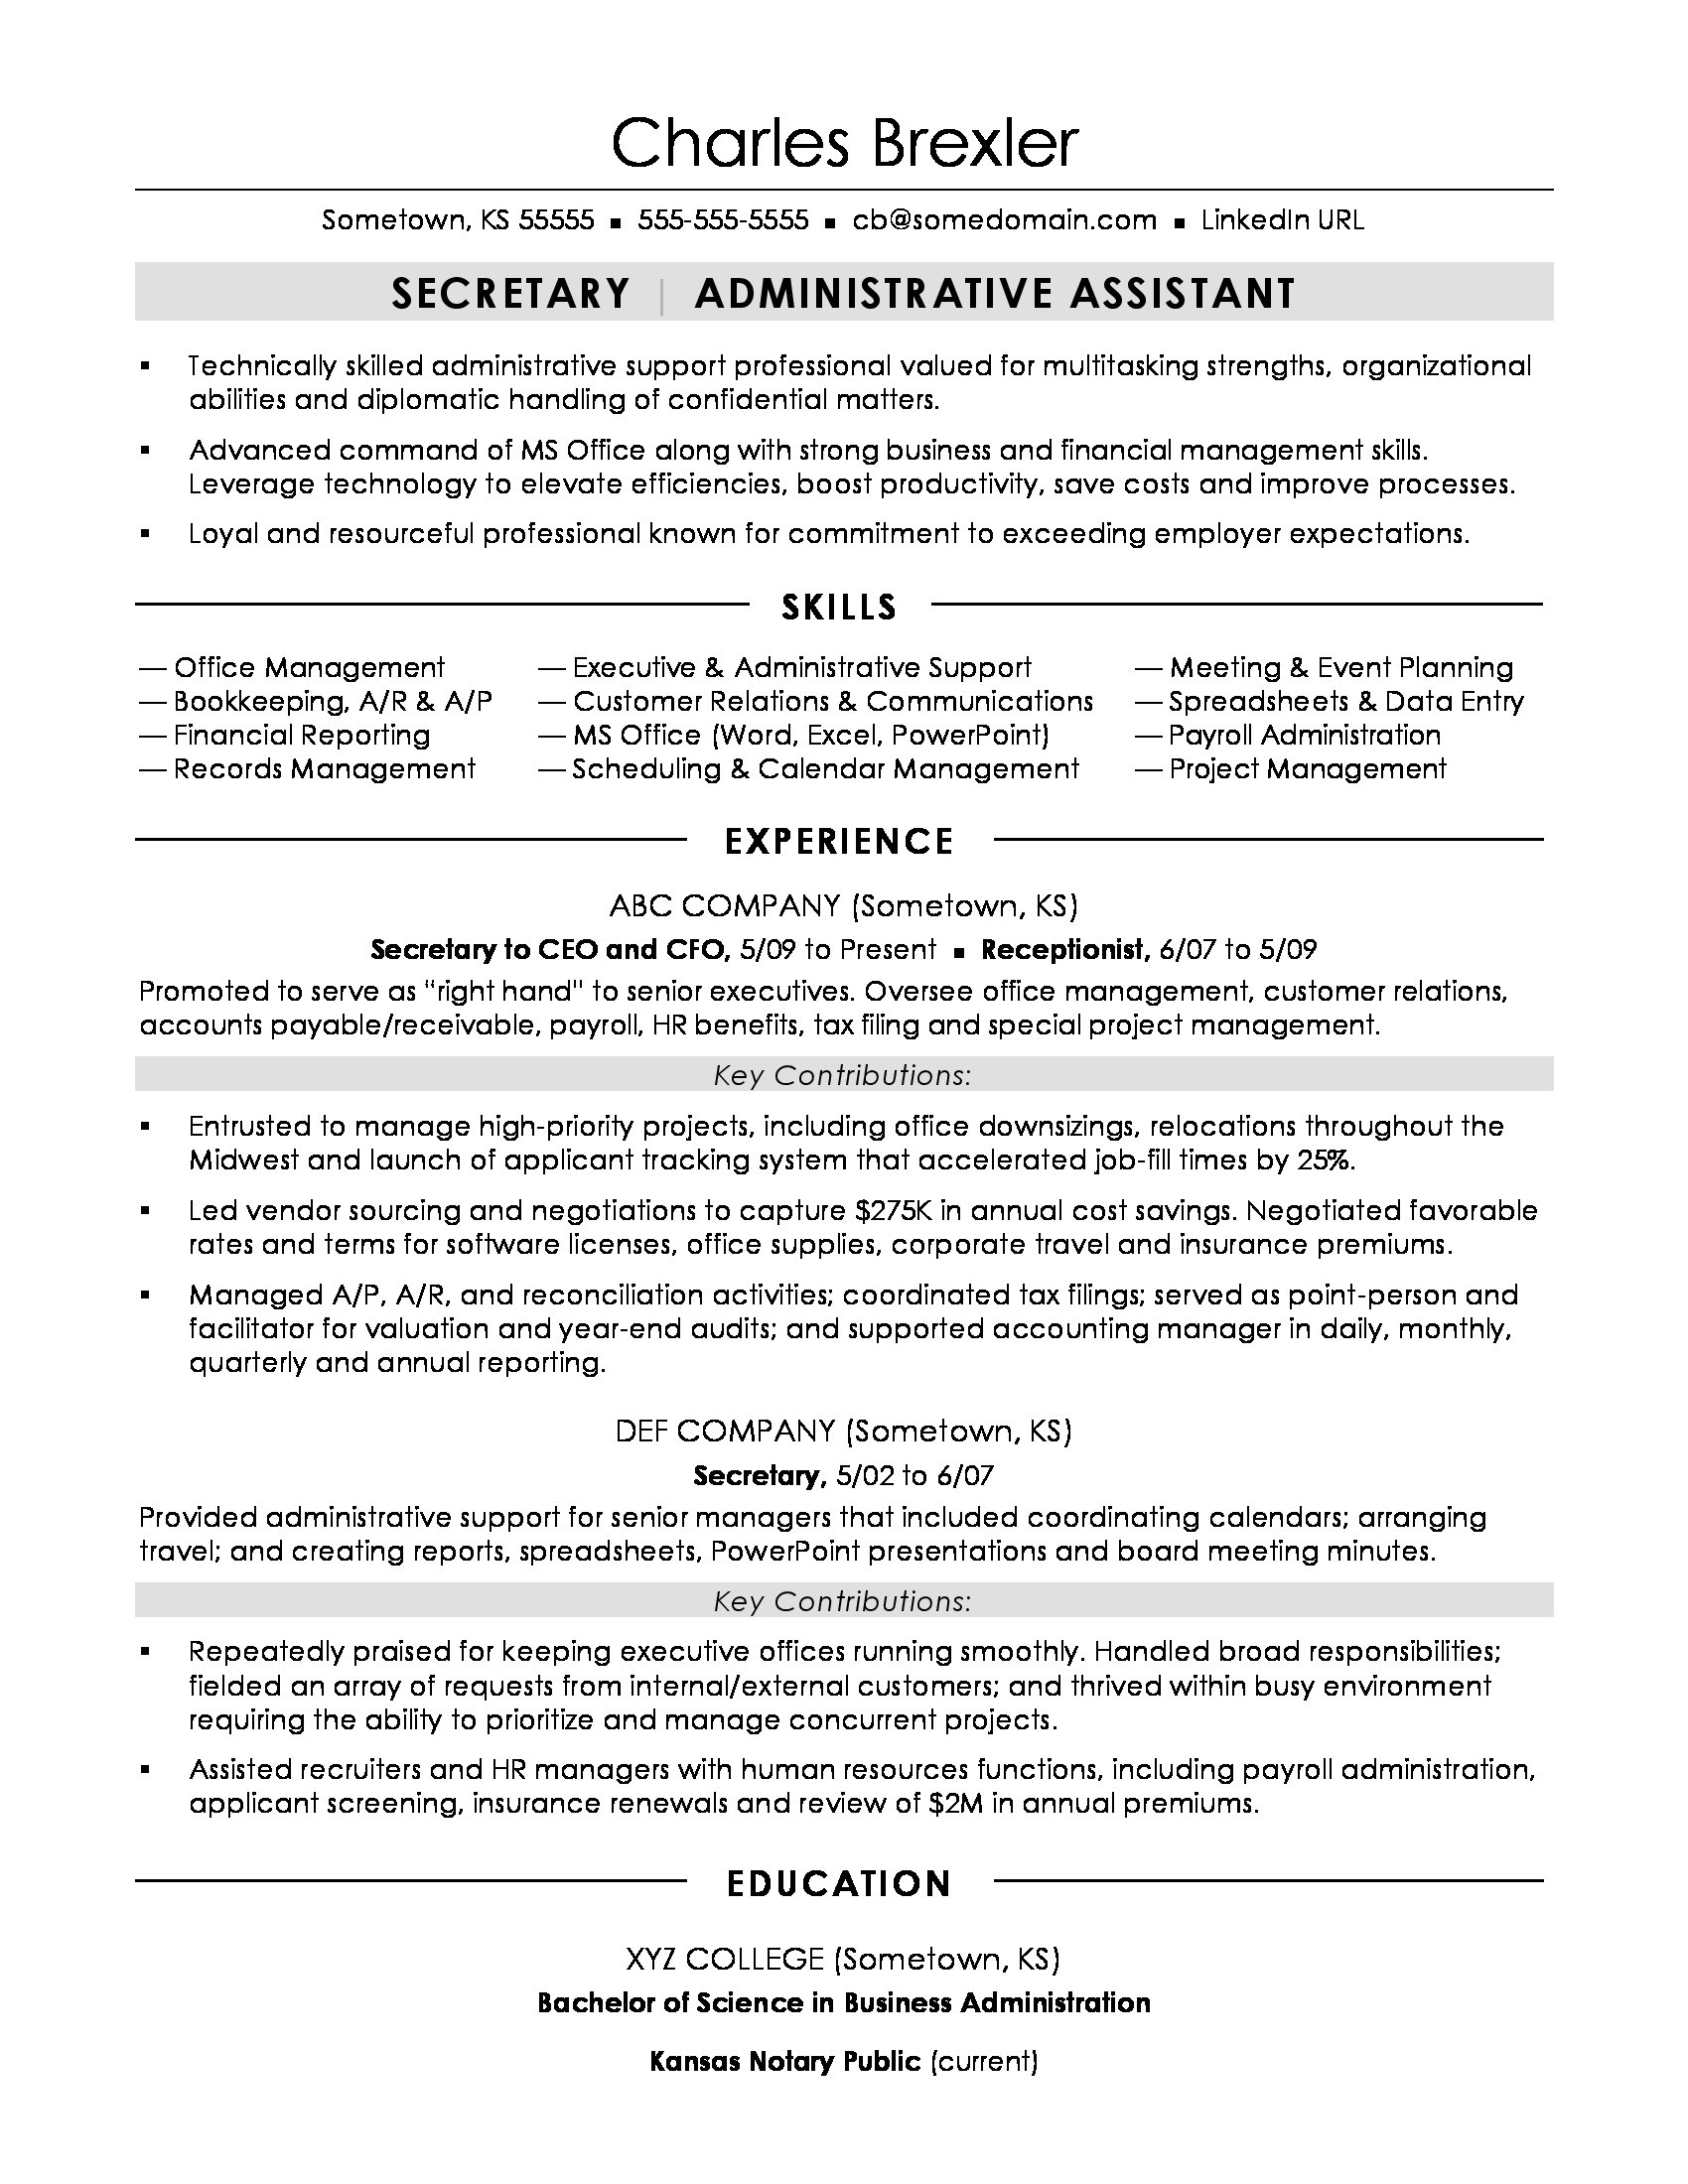 secretary resume sample monster great skills and abilities for banking objective athletic Resume Great Skills And Abilities For Resume